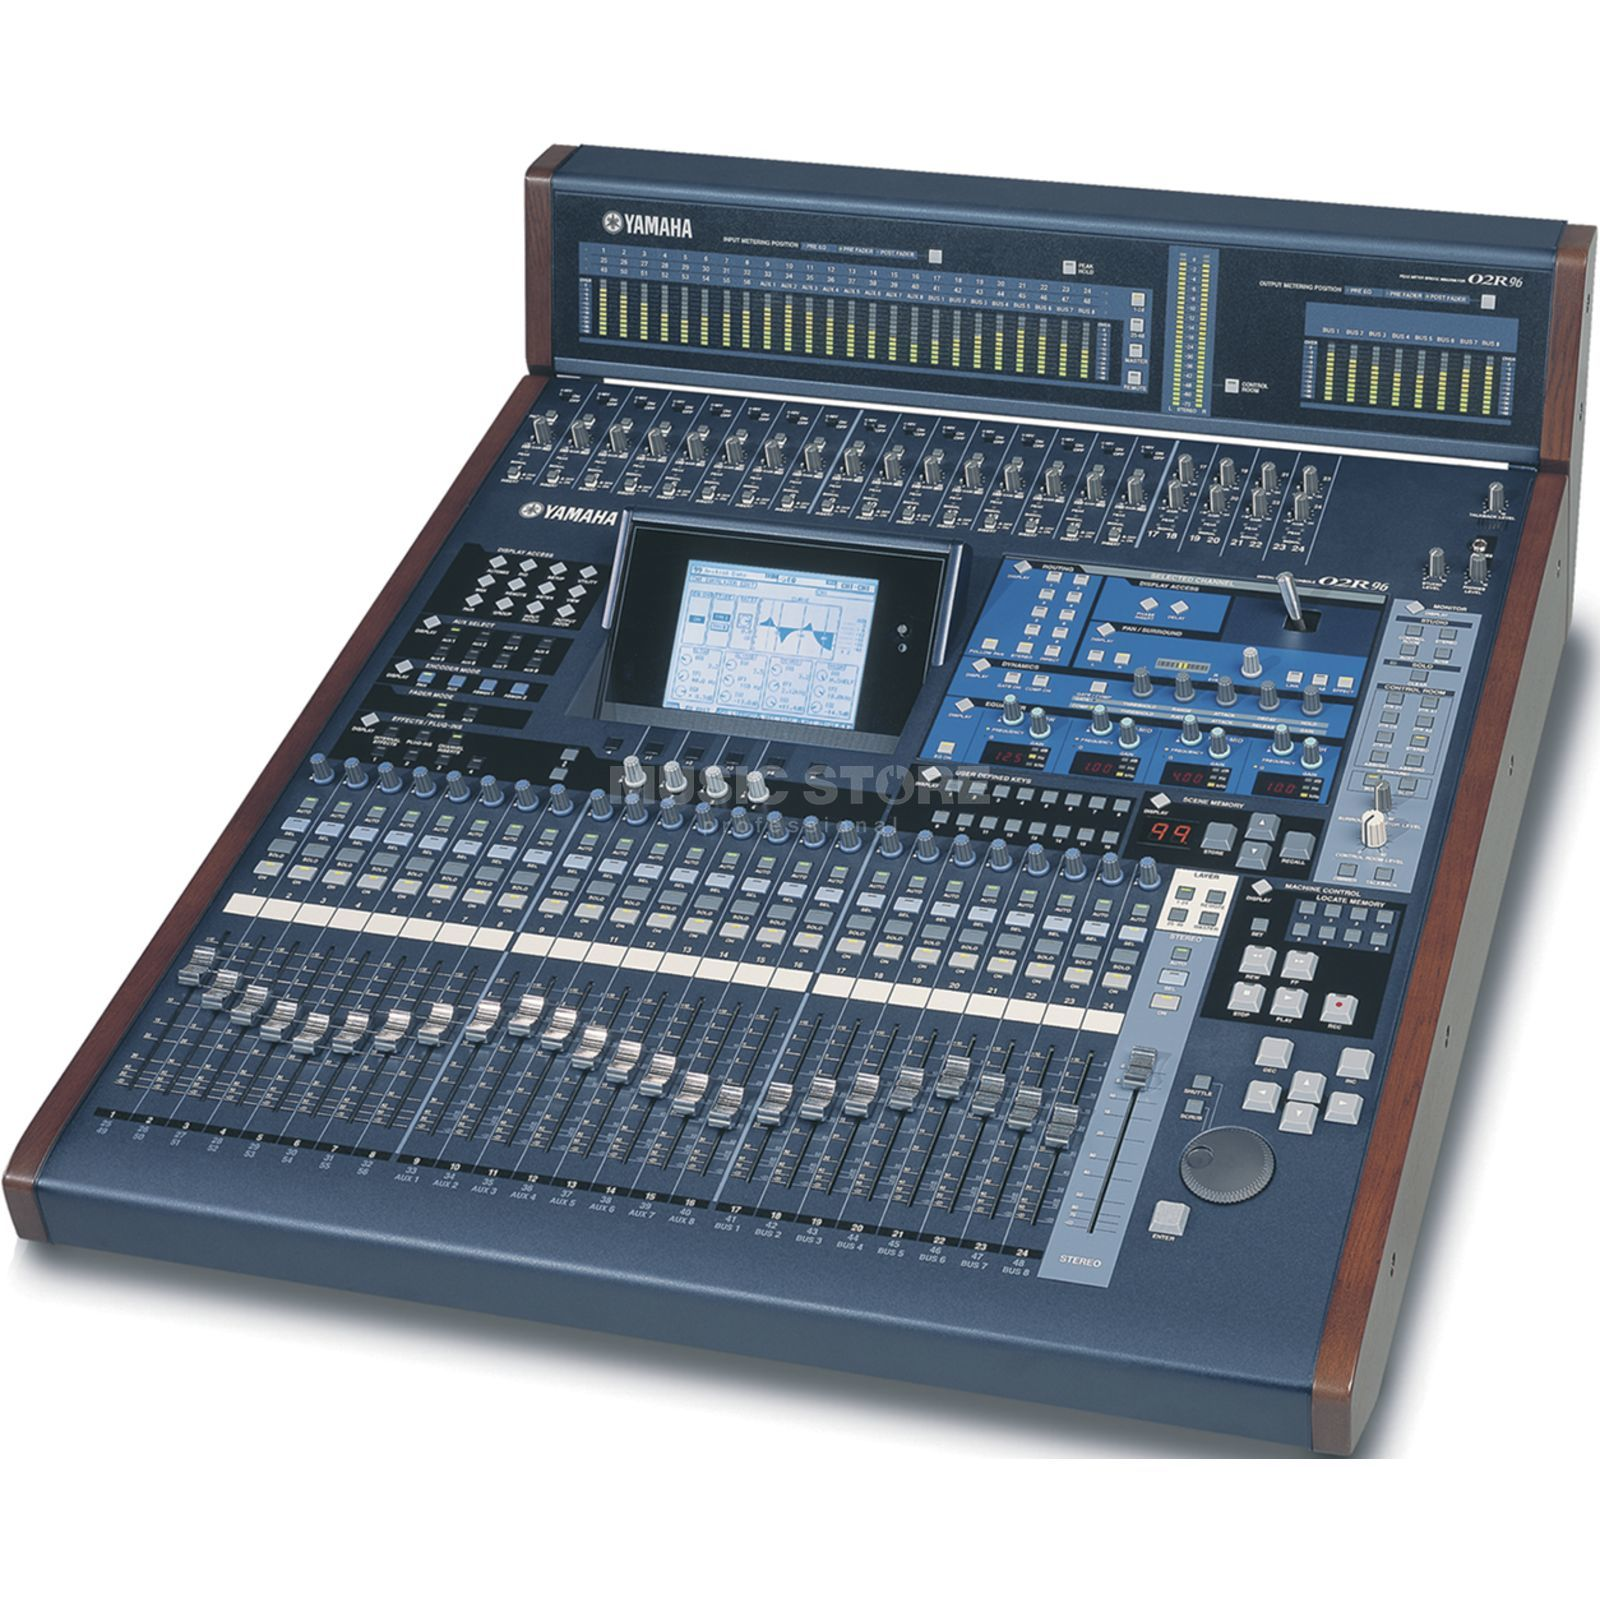 Yamaha 02r 96 vcm table de mixage num rique version v2 56 for Table de mixage xpress 6 keywood